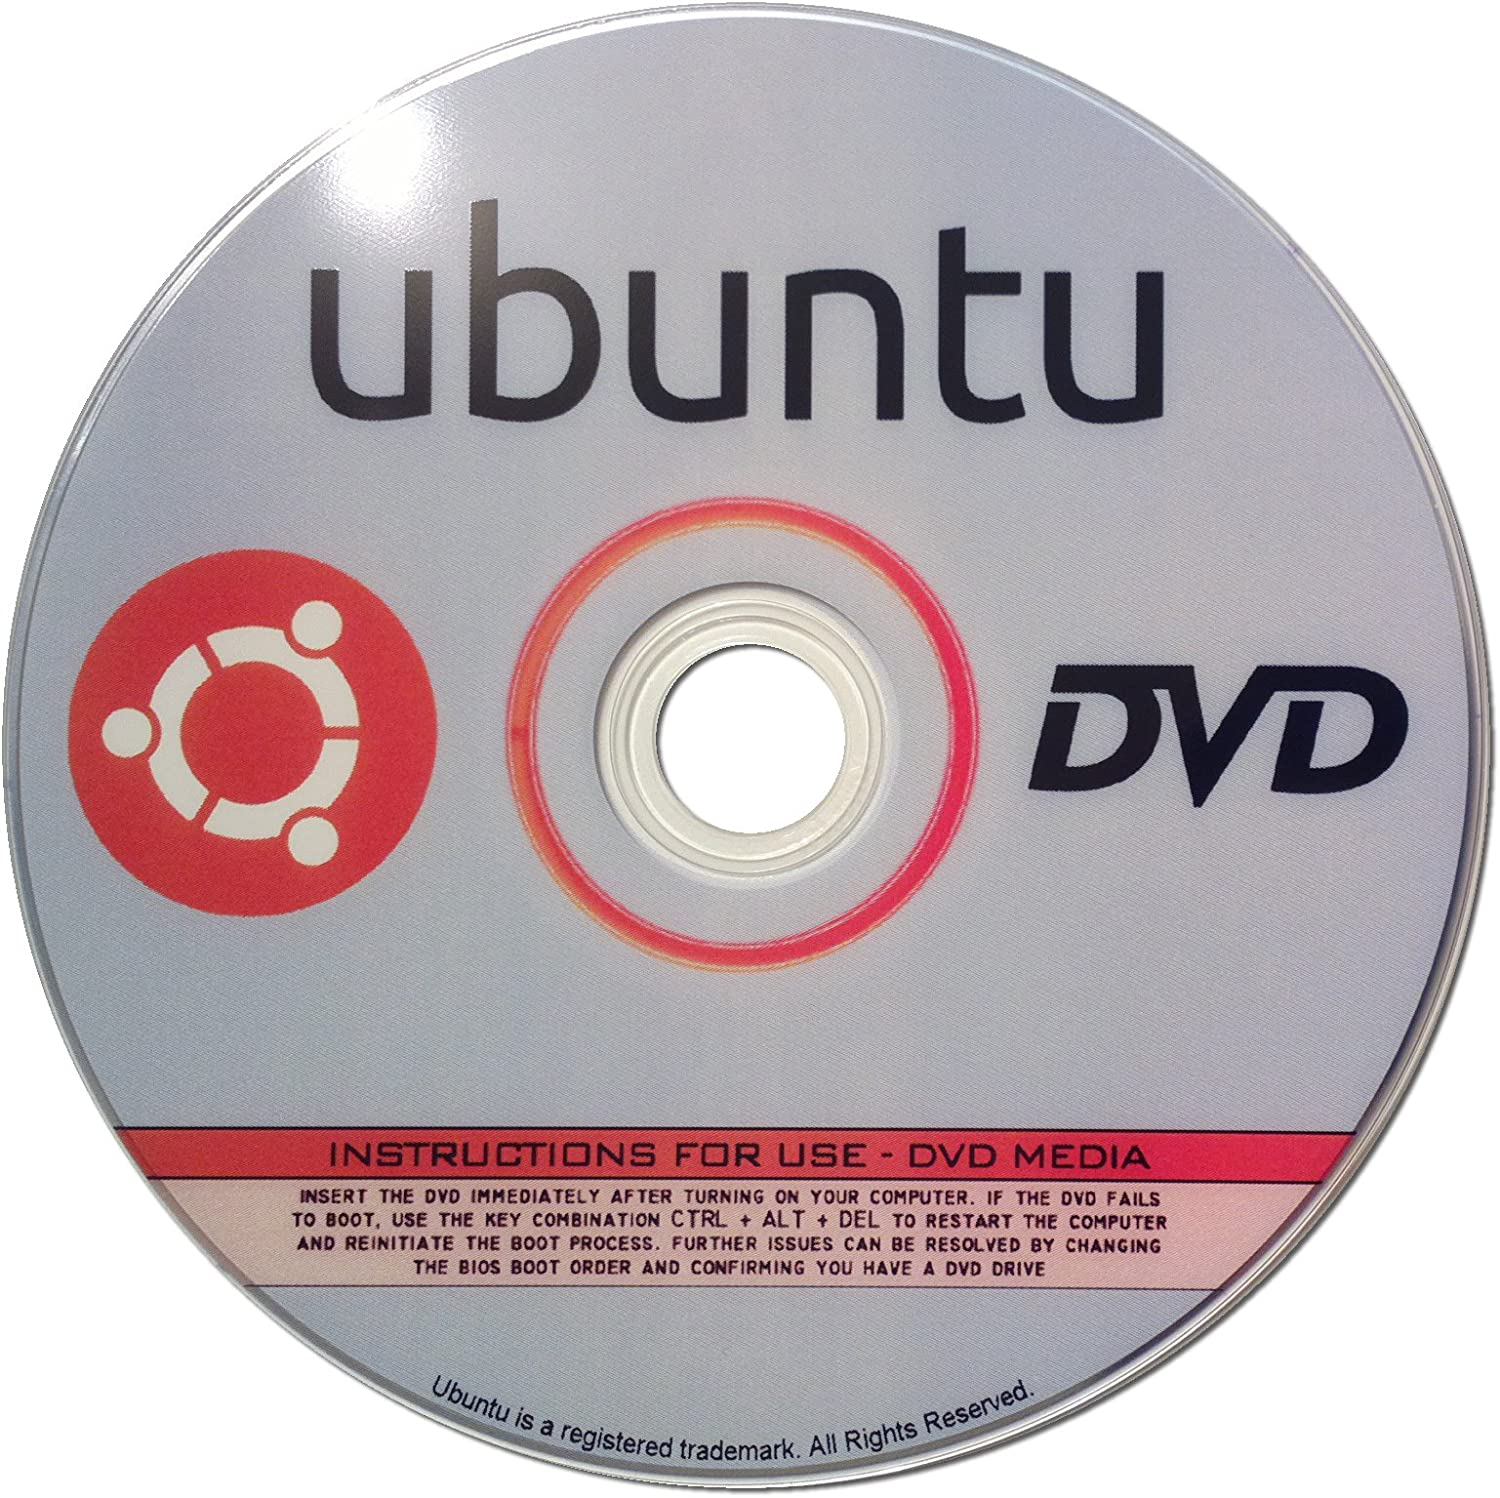 Official Ubuntu Linux LTS Latest Version Long - Rel Term Support Clearance SALE 70% OFF Outlet Limited time